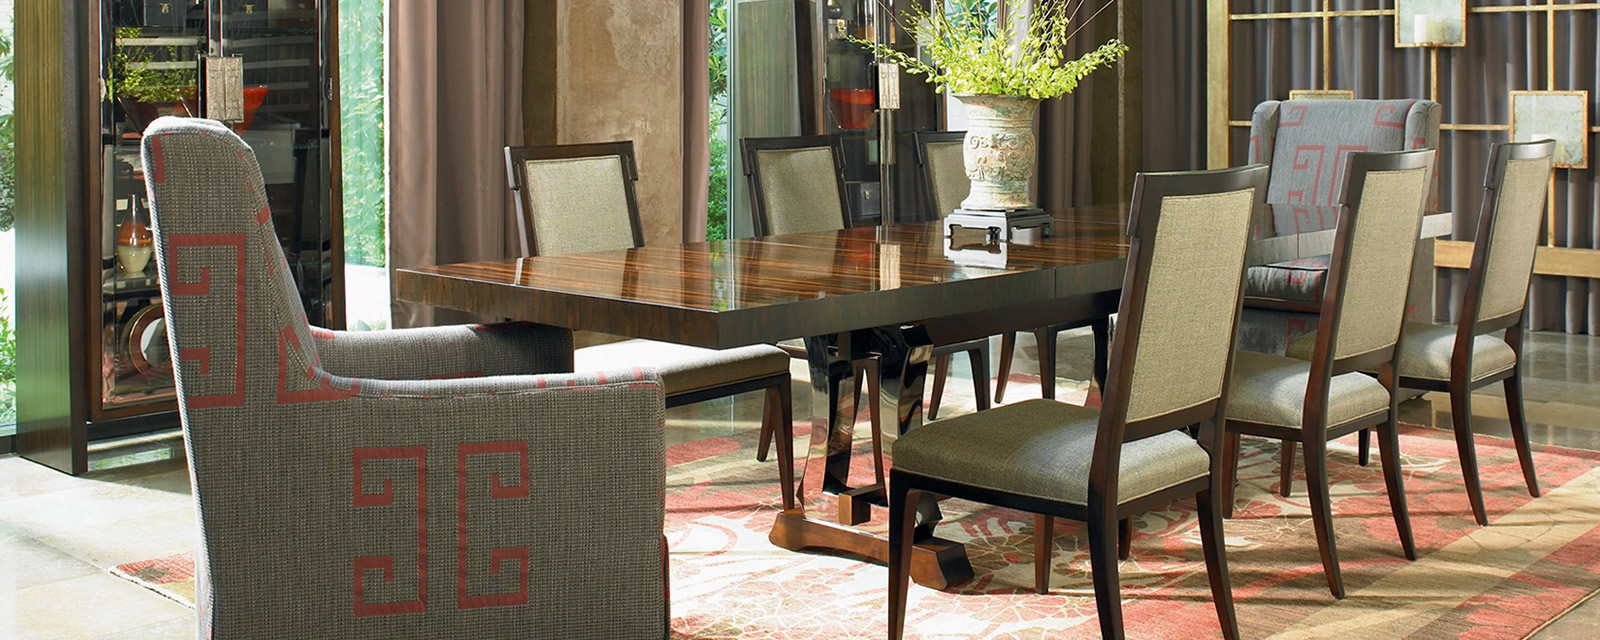 chair design brands french cafe chairs metal our furniture robb stucky